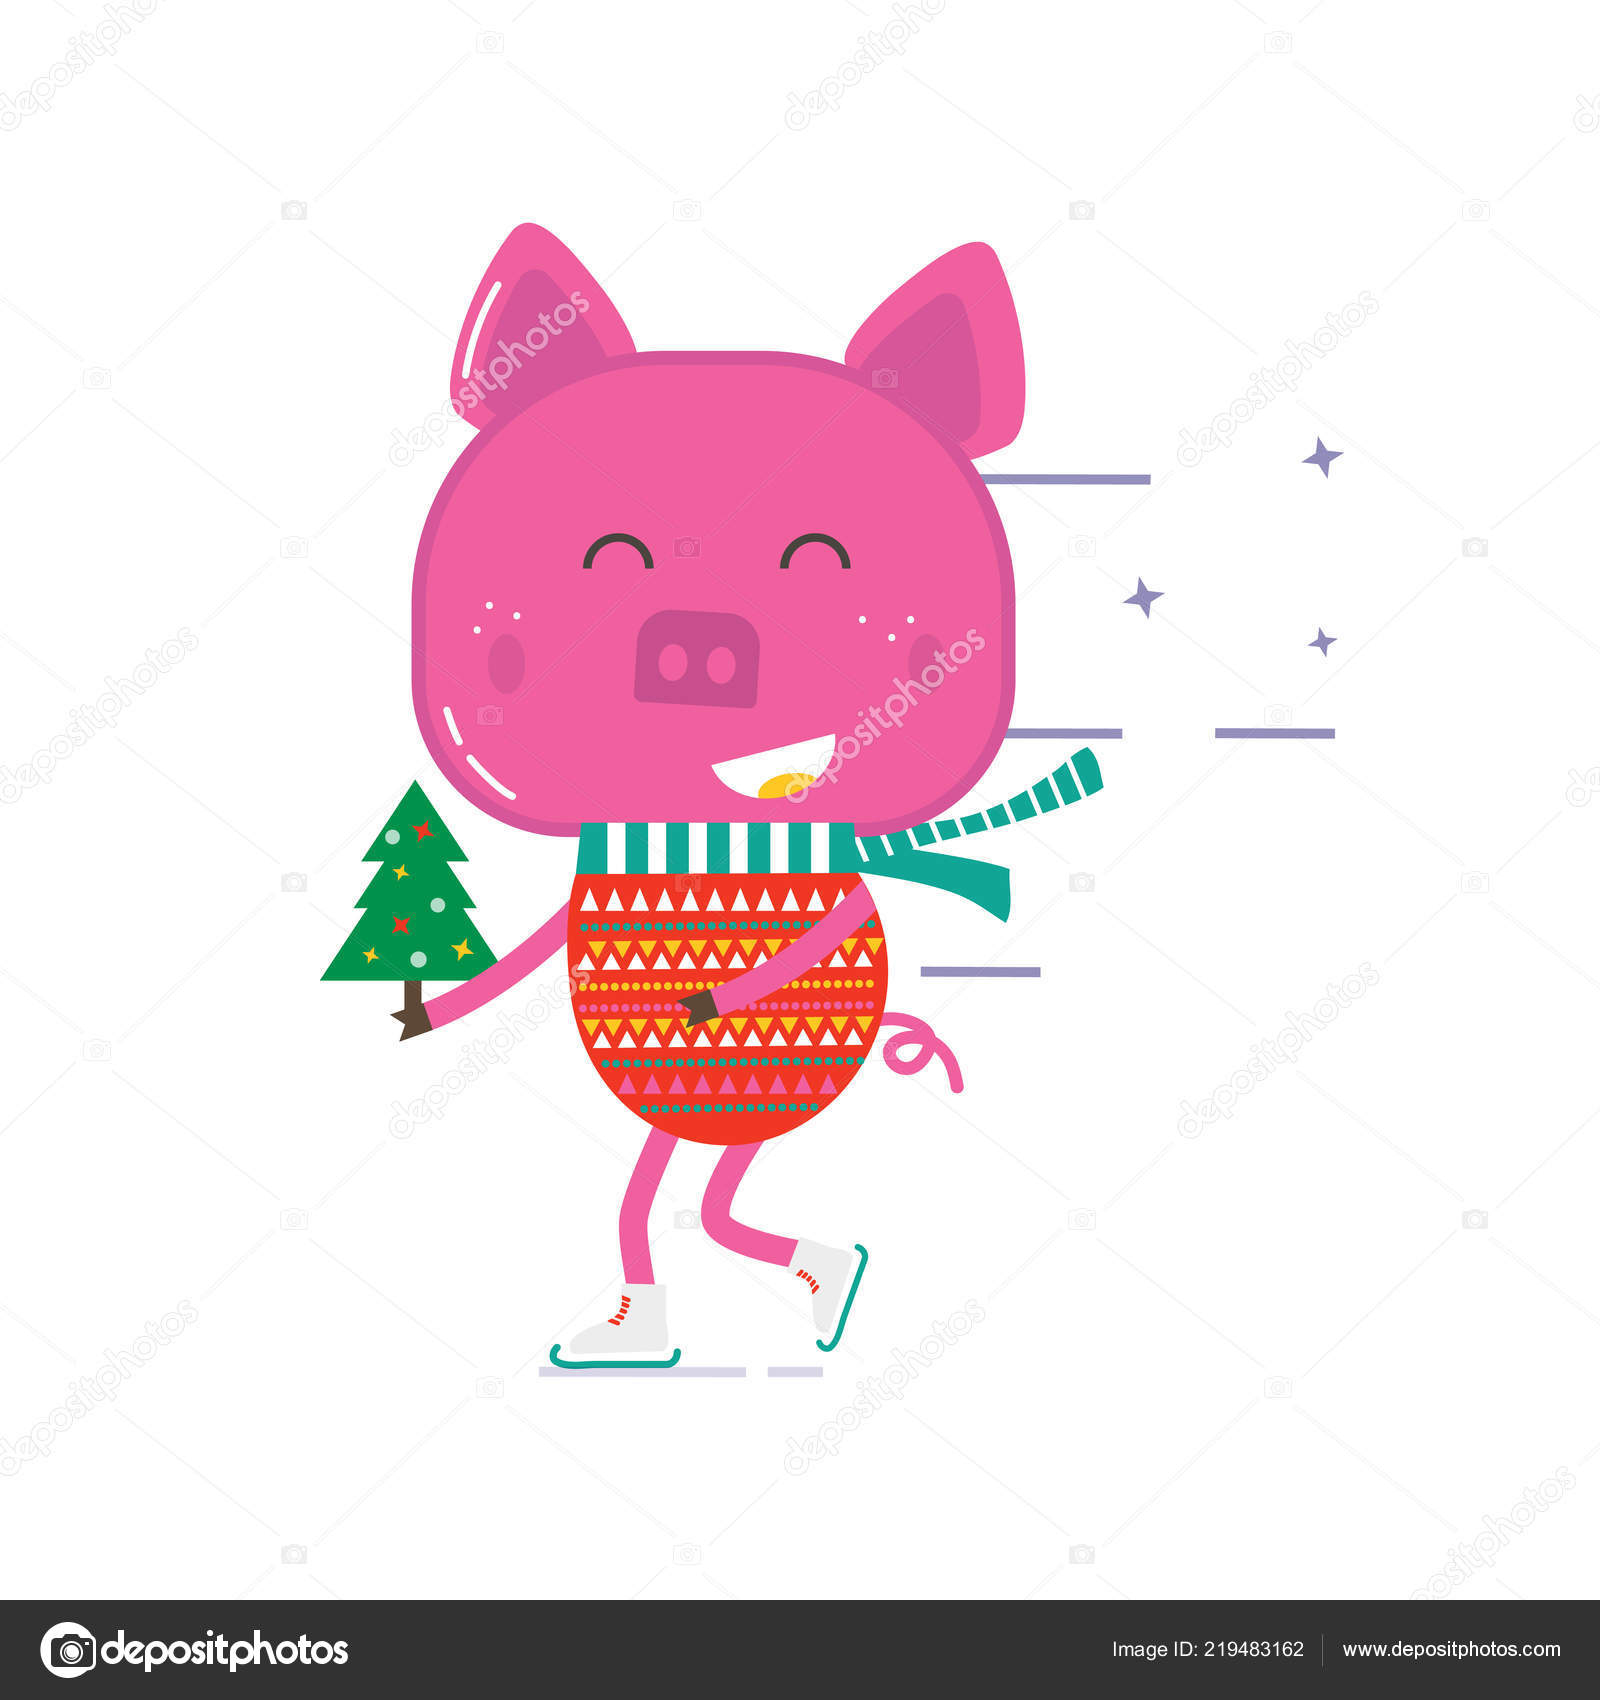 Merry Christmas Greeting Card Cute Animals Pig Flat Style Icons